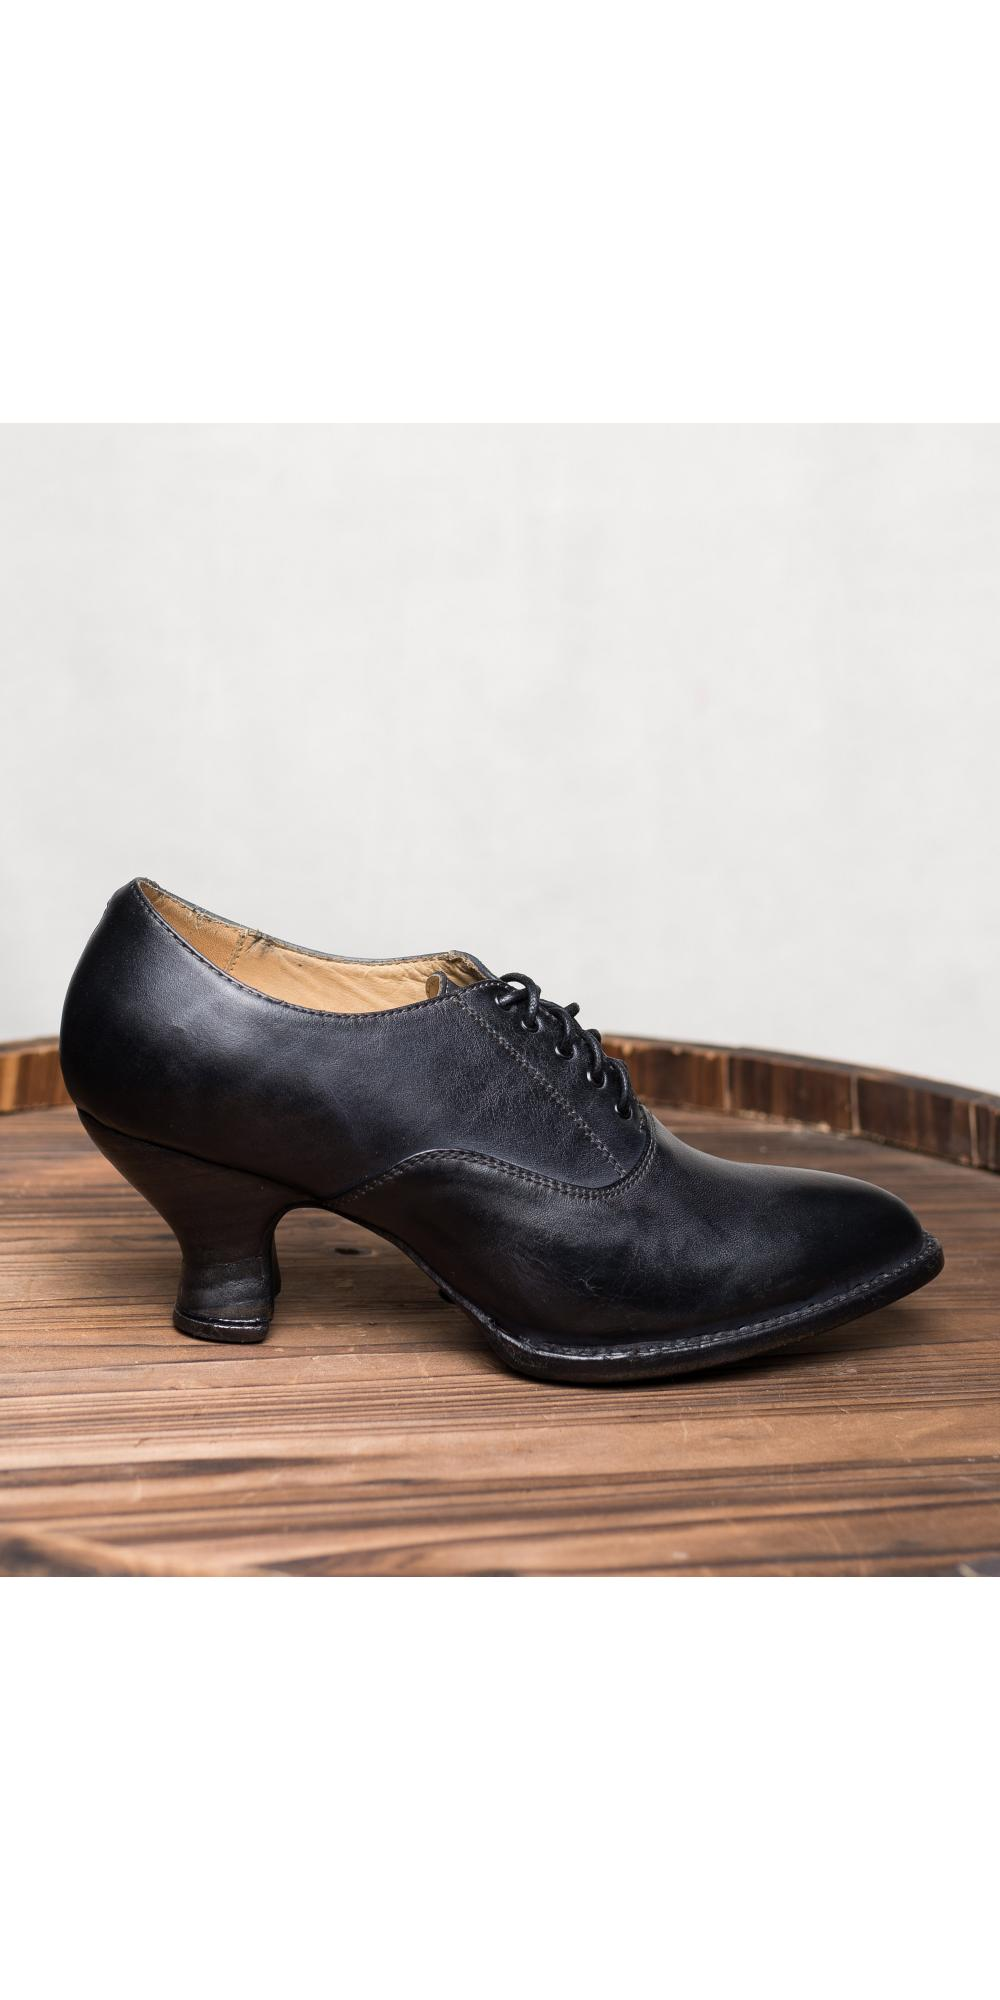 Victorian Style Shoes In Black Rustic